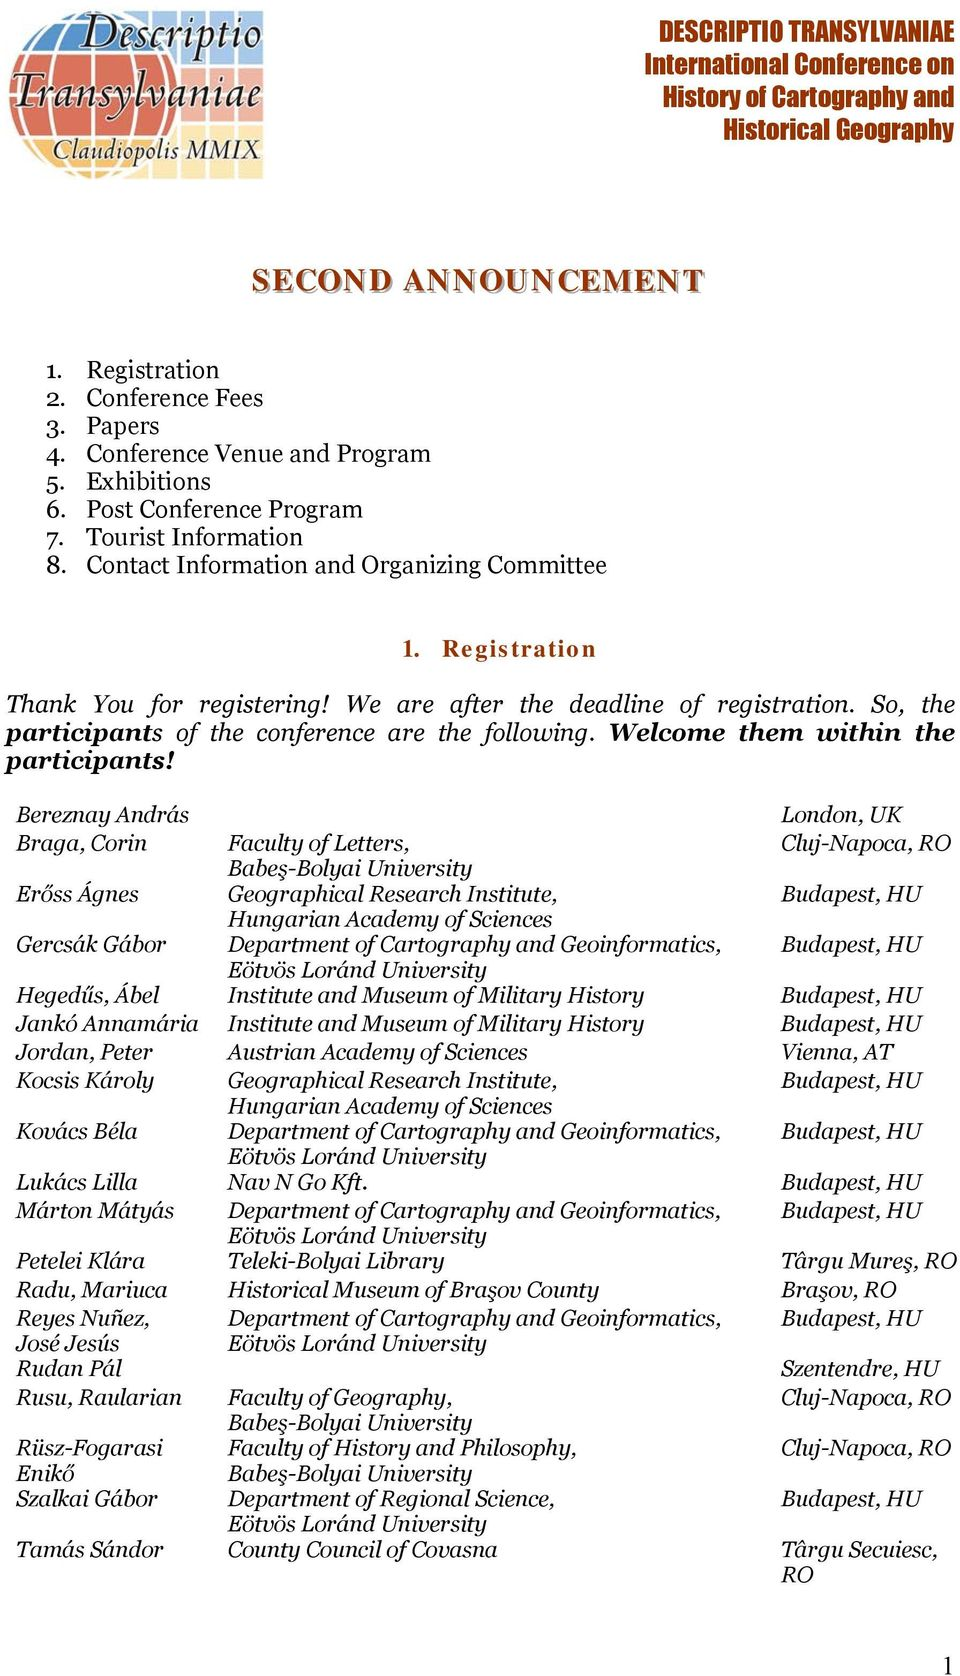 So, the participants of the conference are the following. Welcome them within the participants!